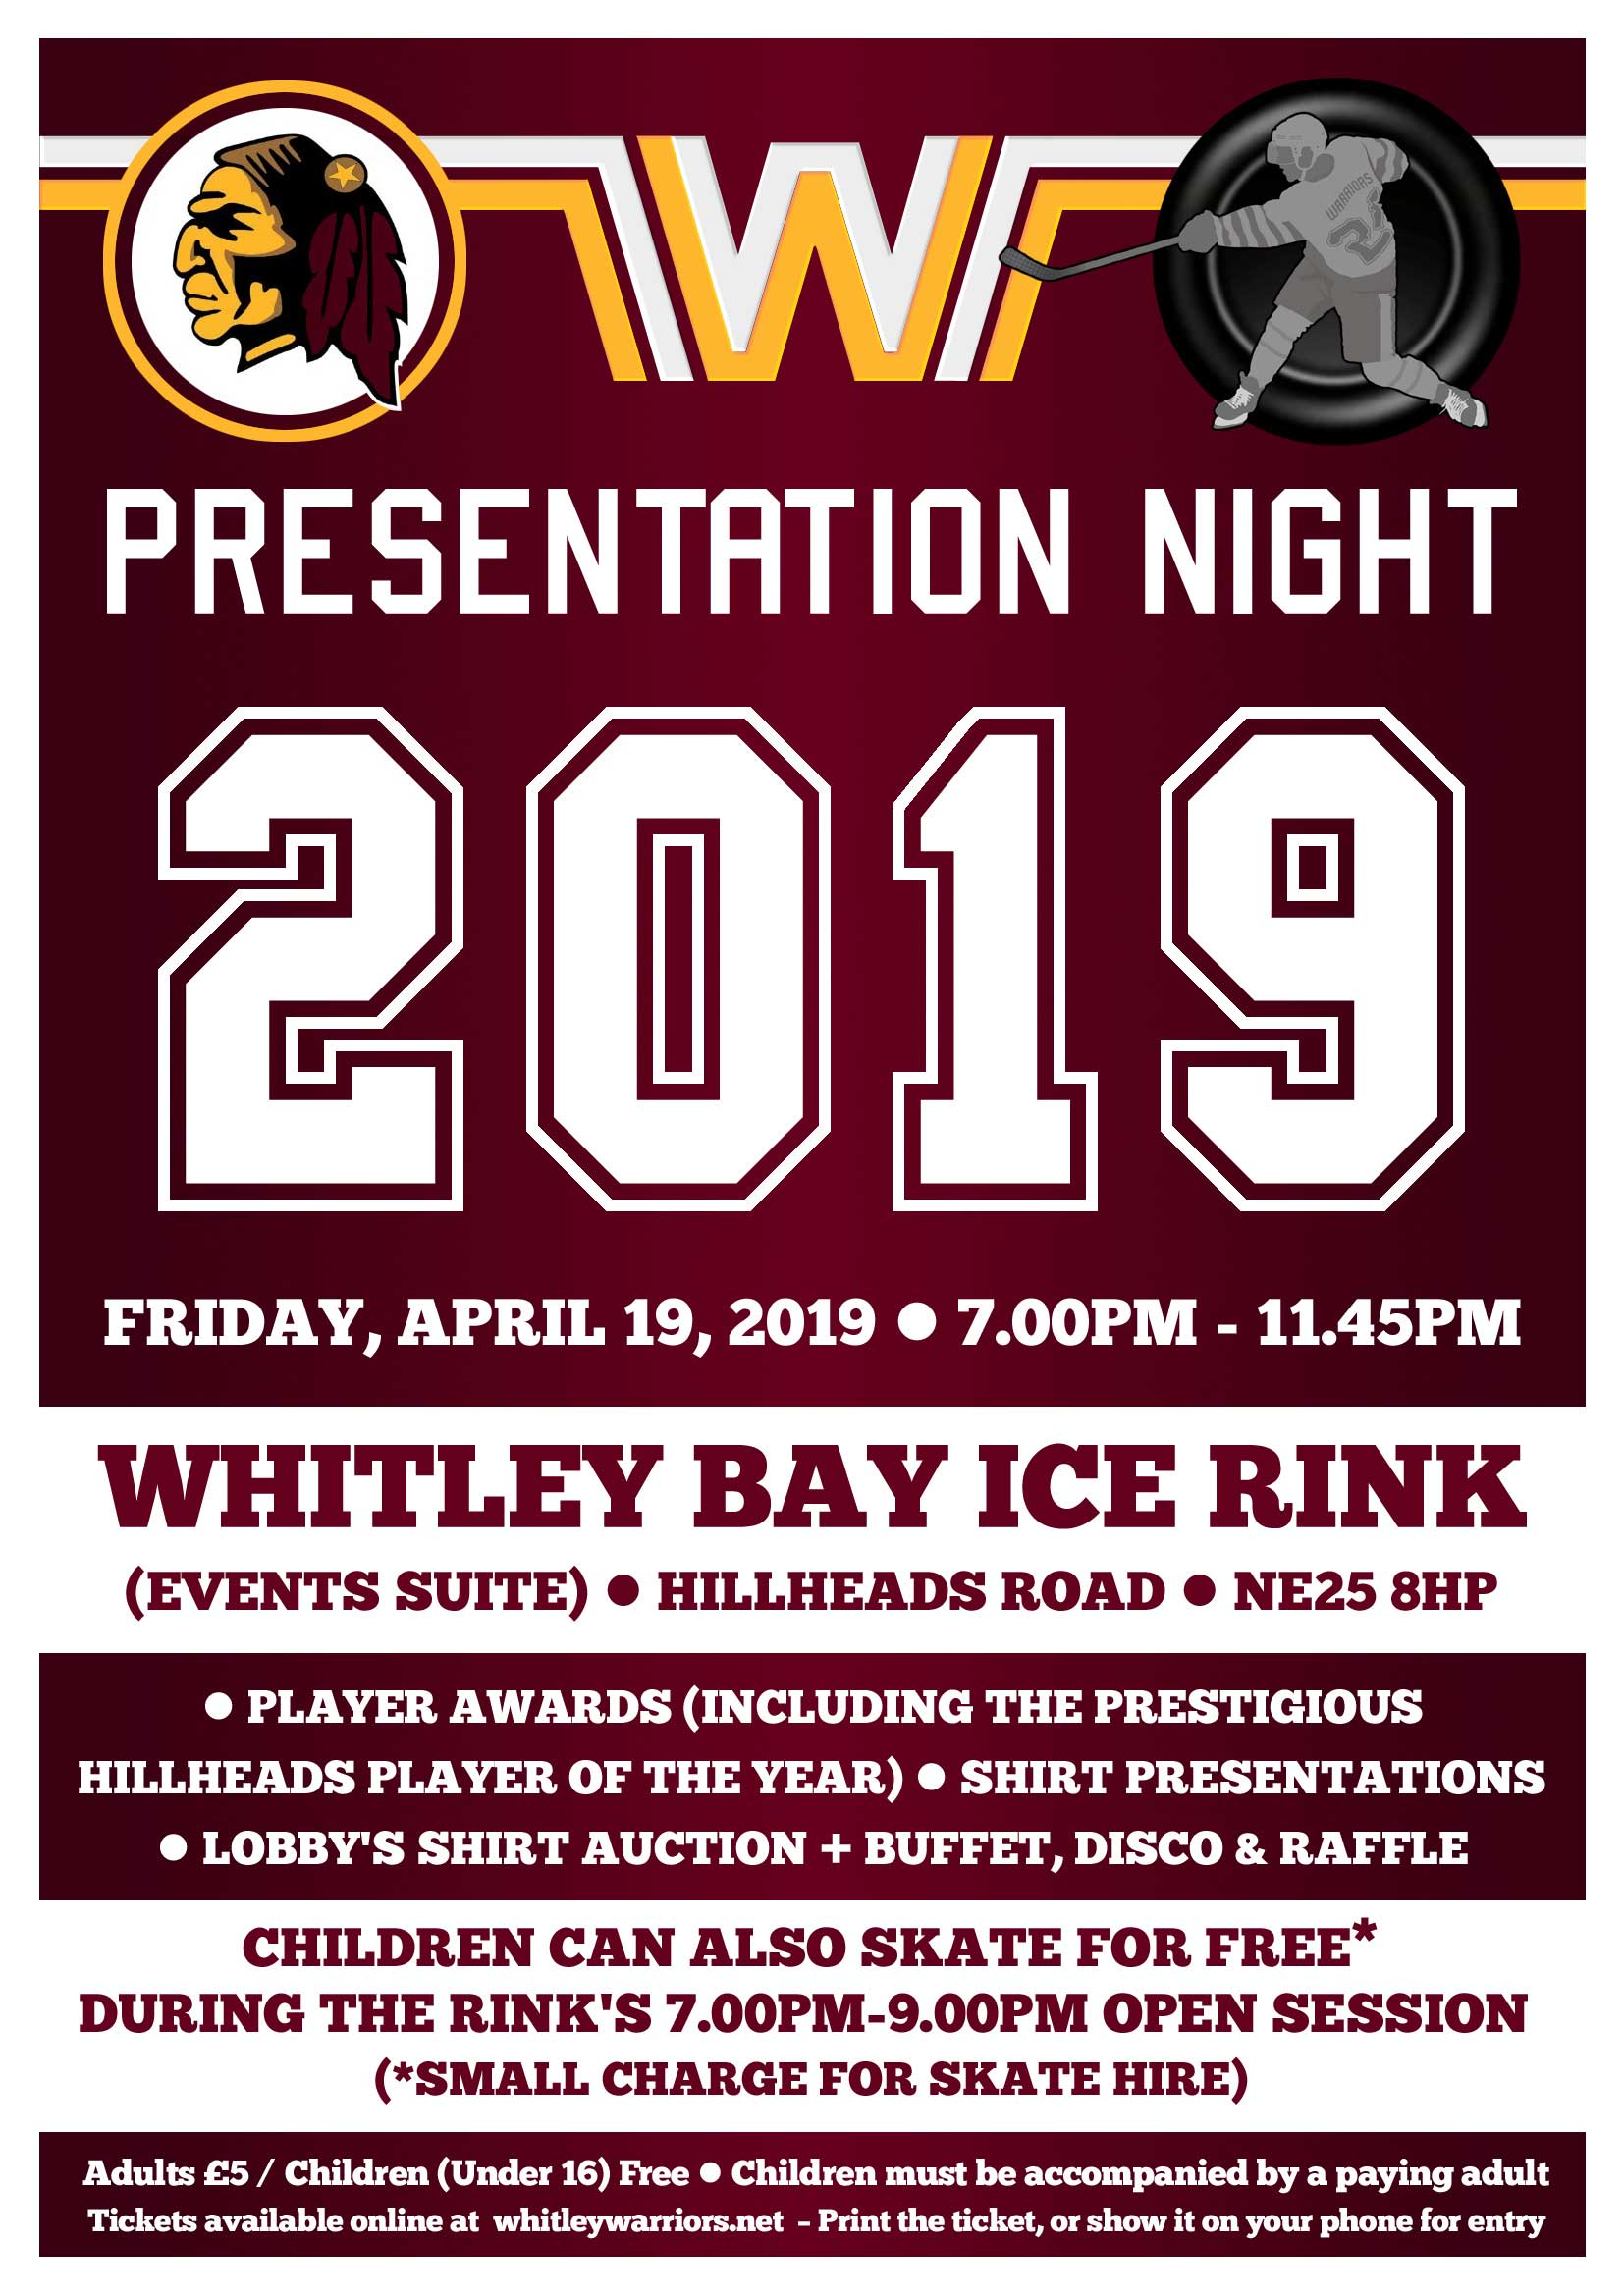 Presentation Night 2019 - Friday 19 April 2019